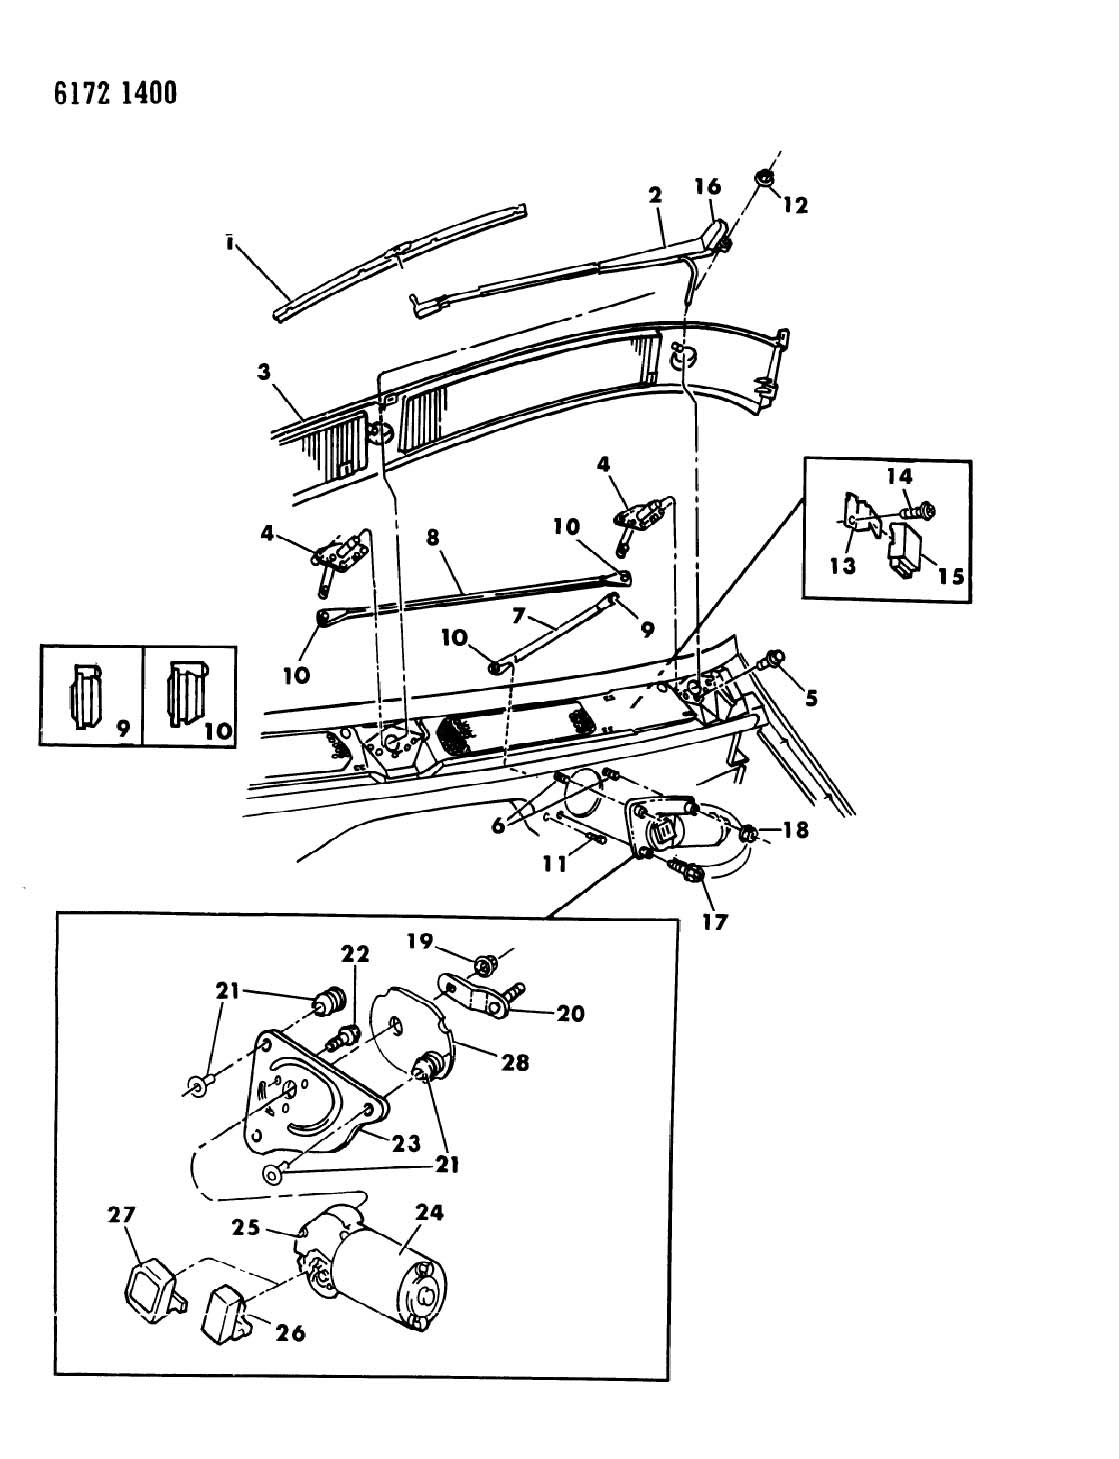 Plymouth Voyager Parts Diagram Wipers. Plymouth. Auto